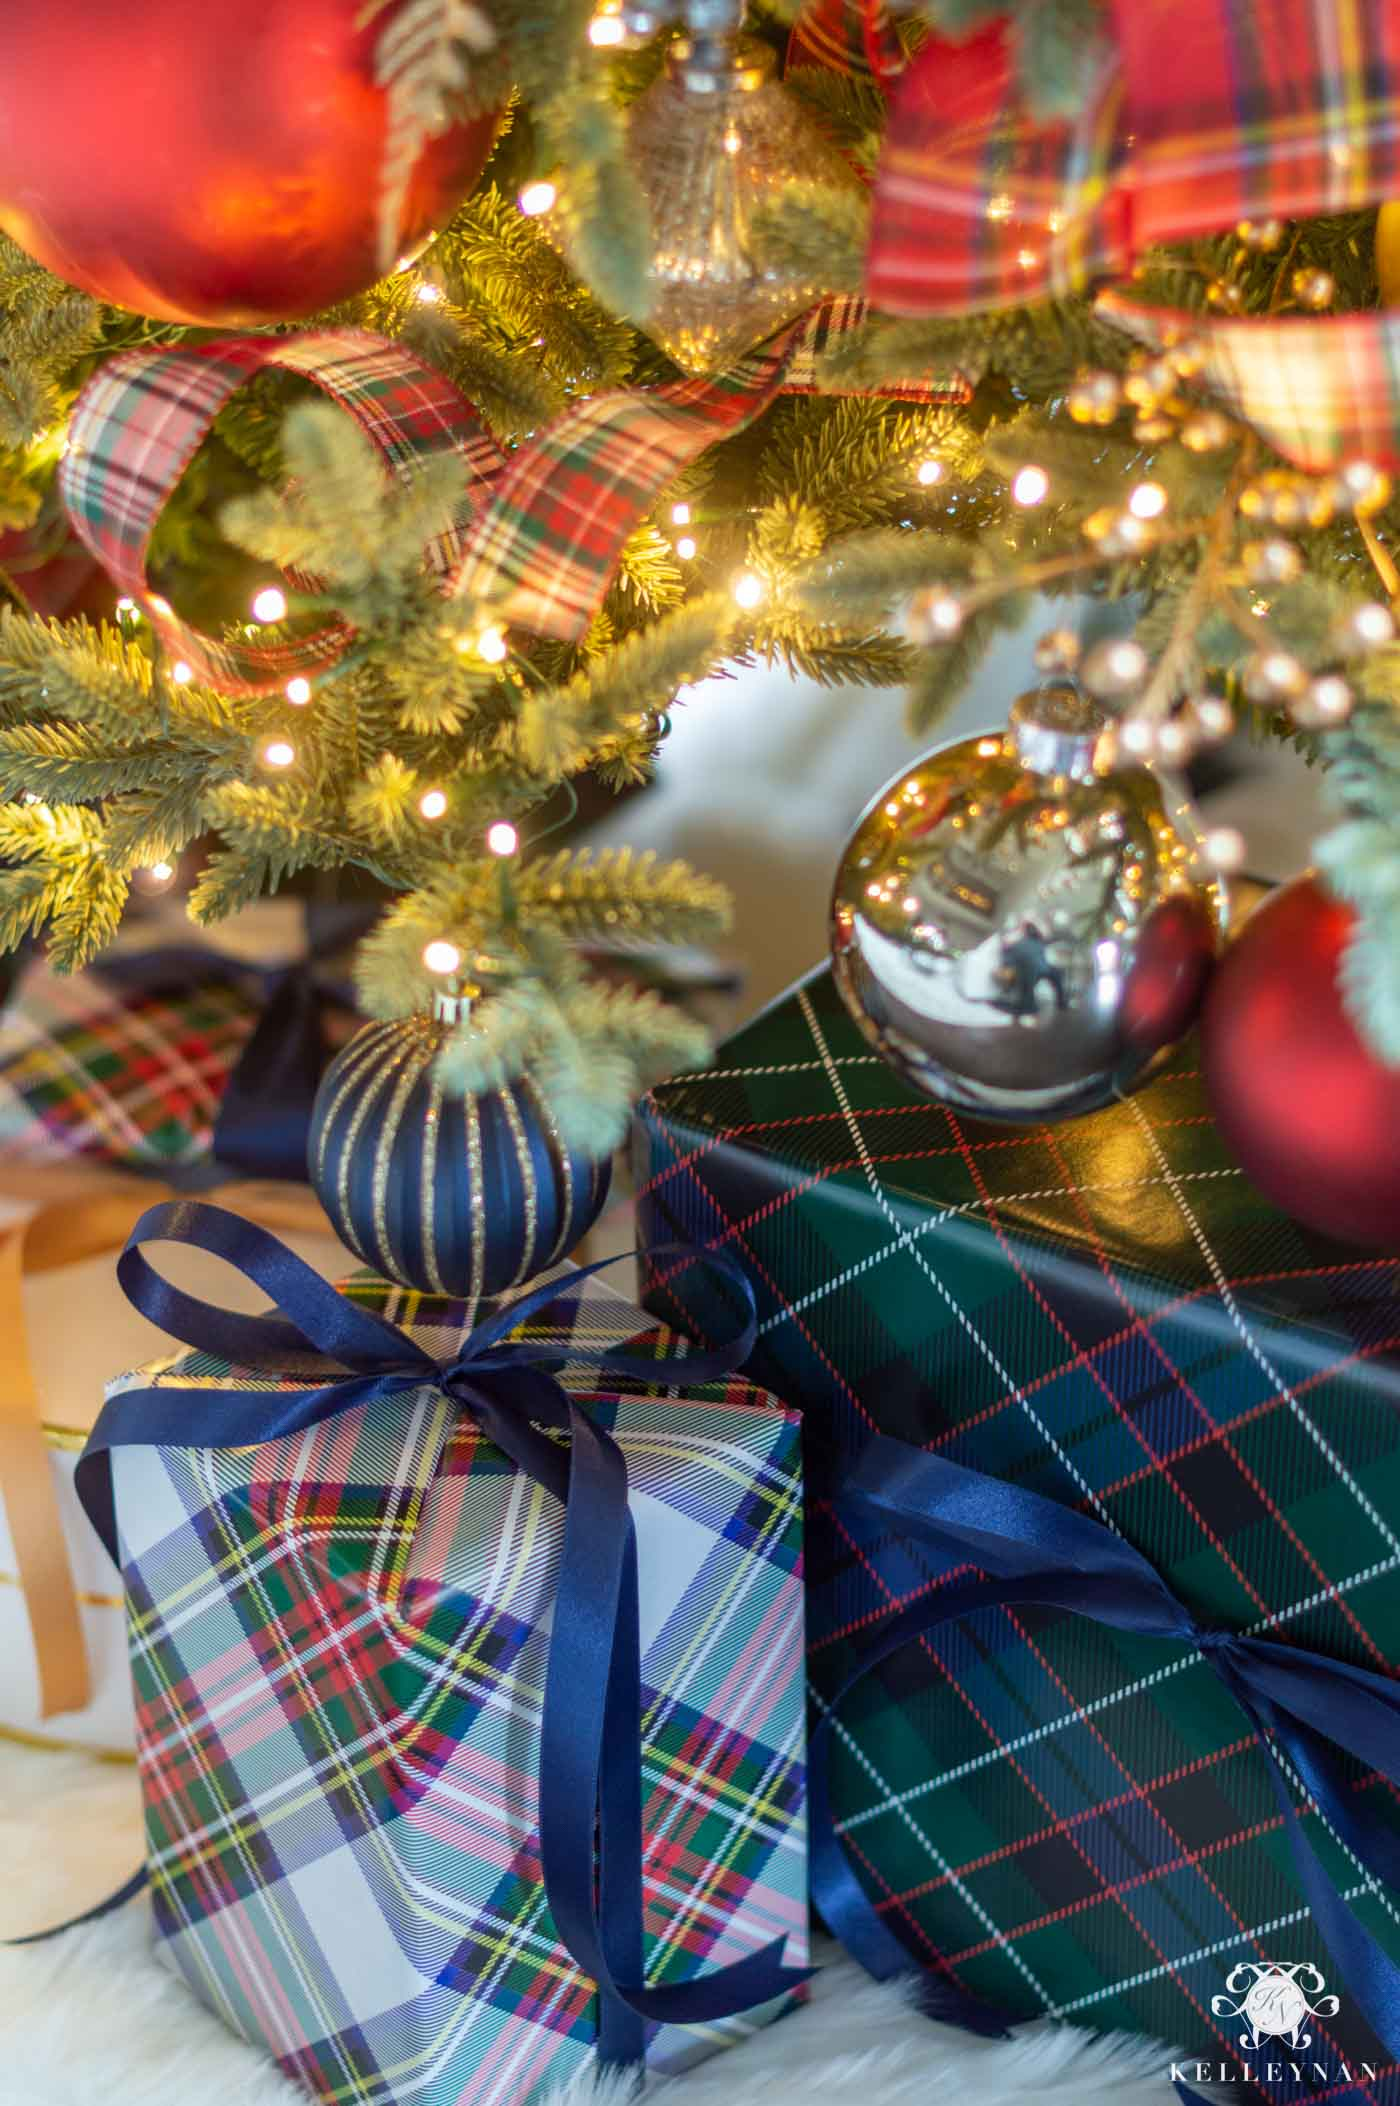 Plaid Tartan Gift Wrap Ideas